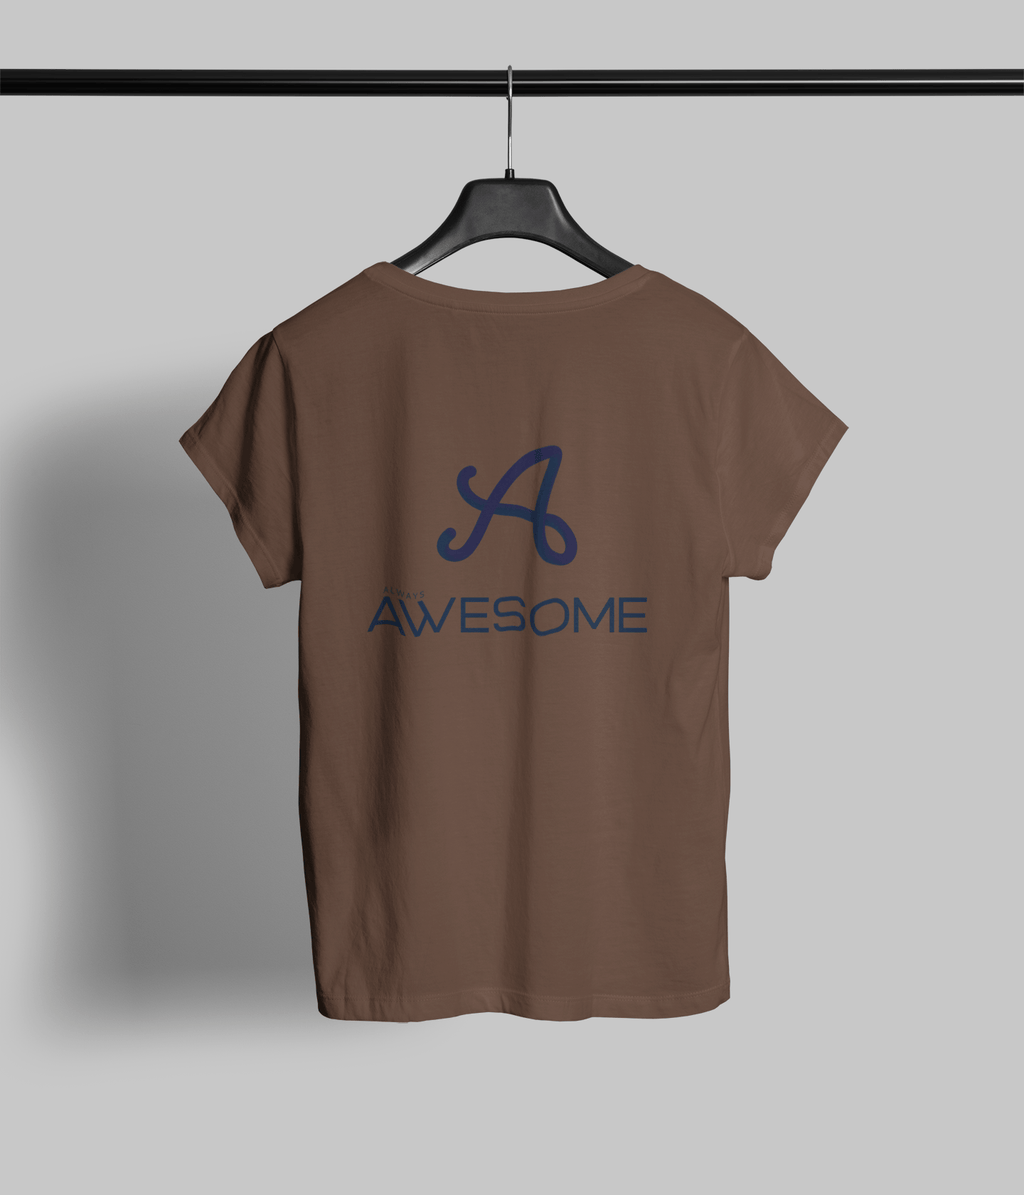 Always Awesome 2 Clothing Printrove Coffee Brown 6